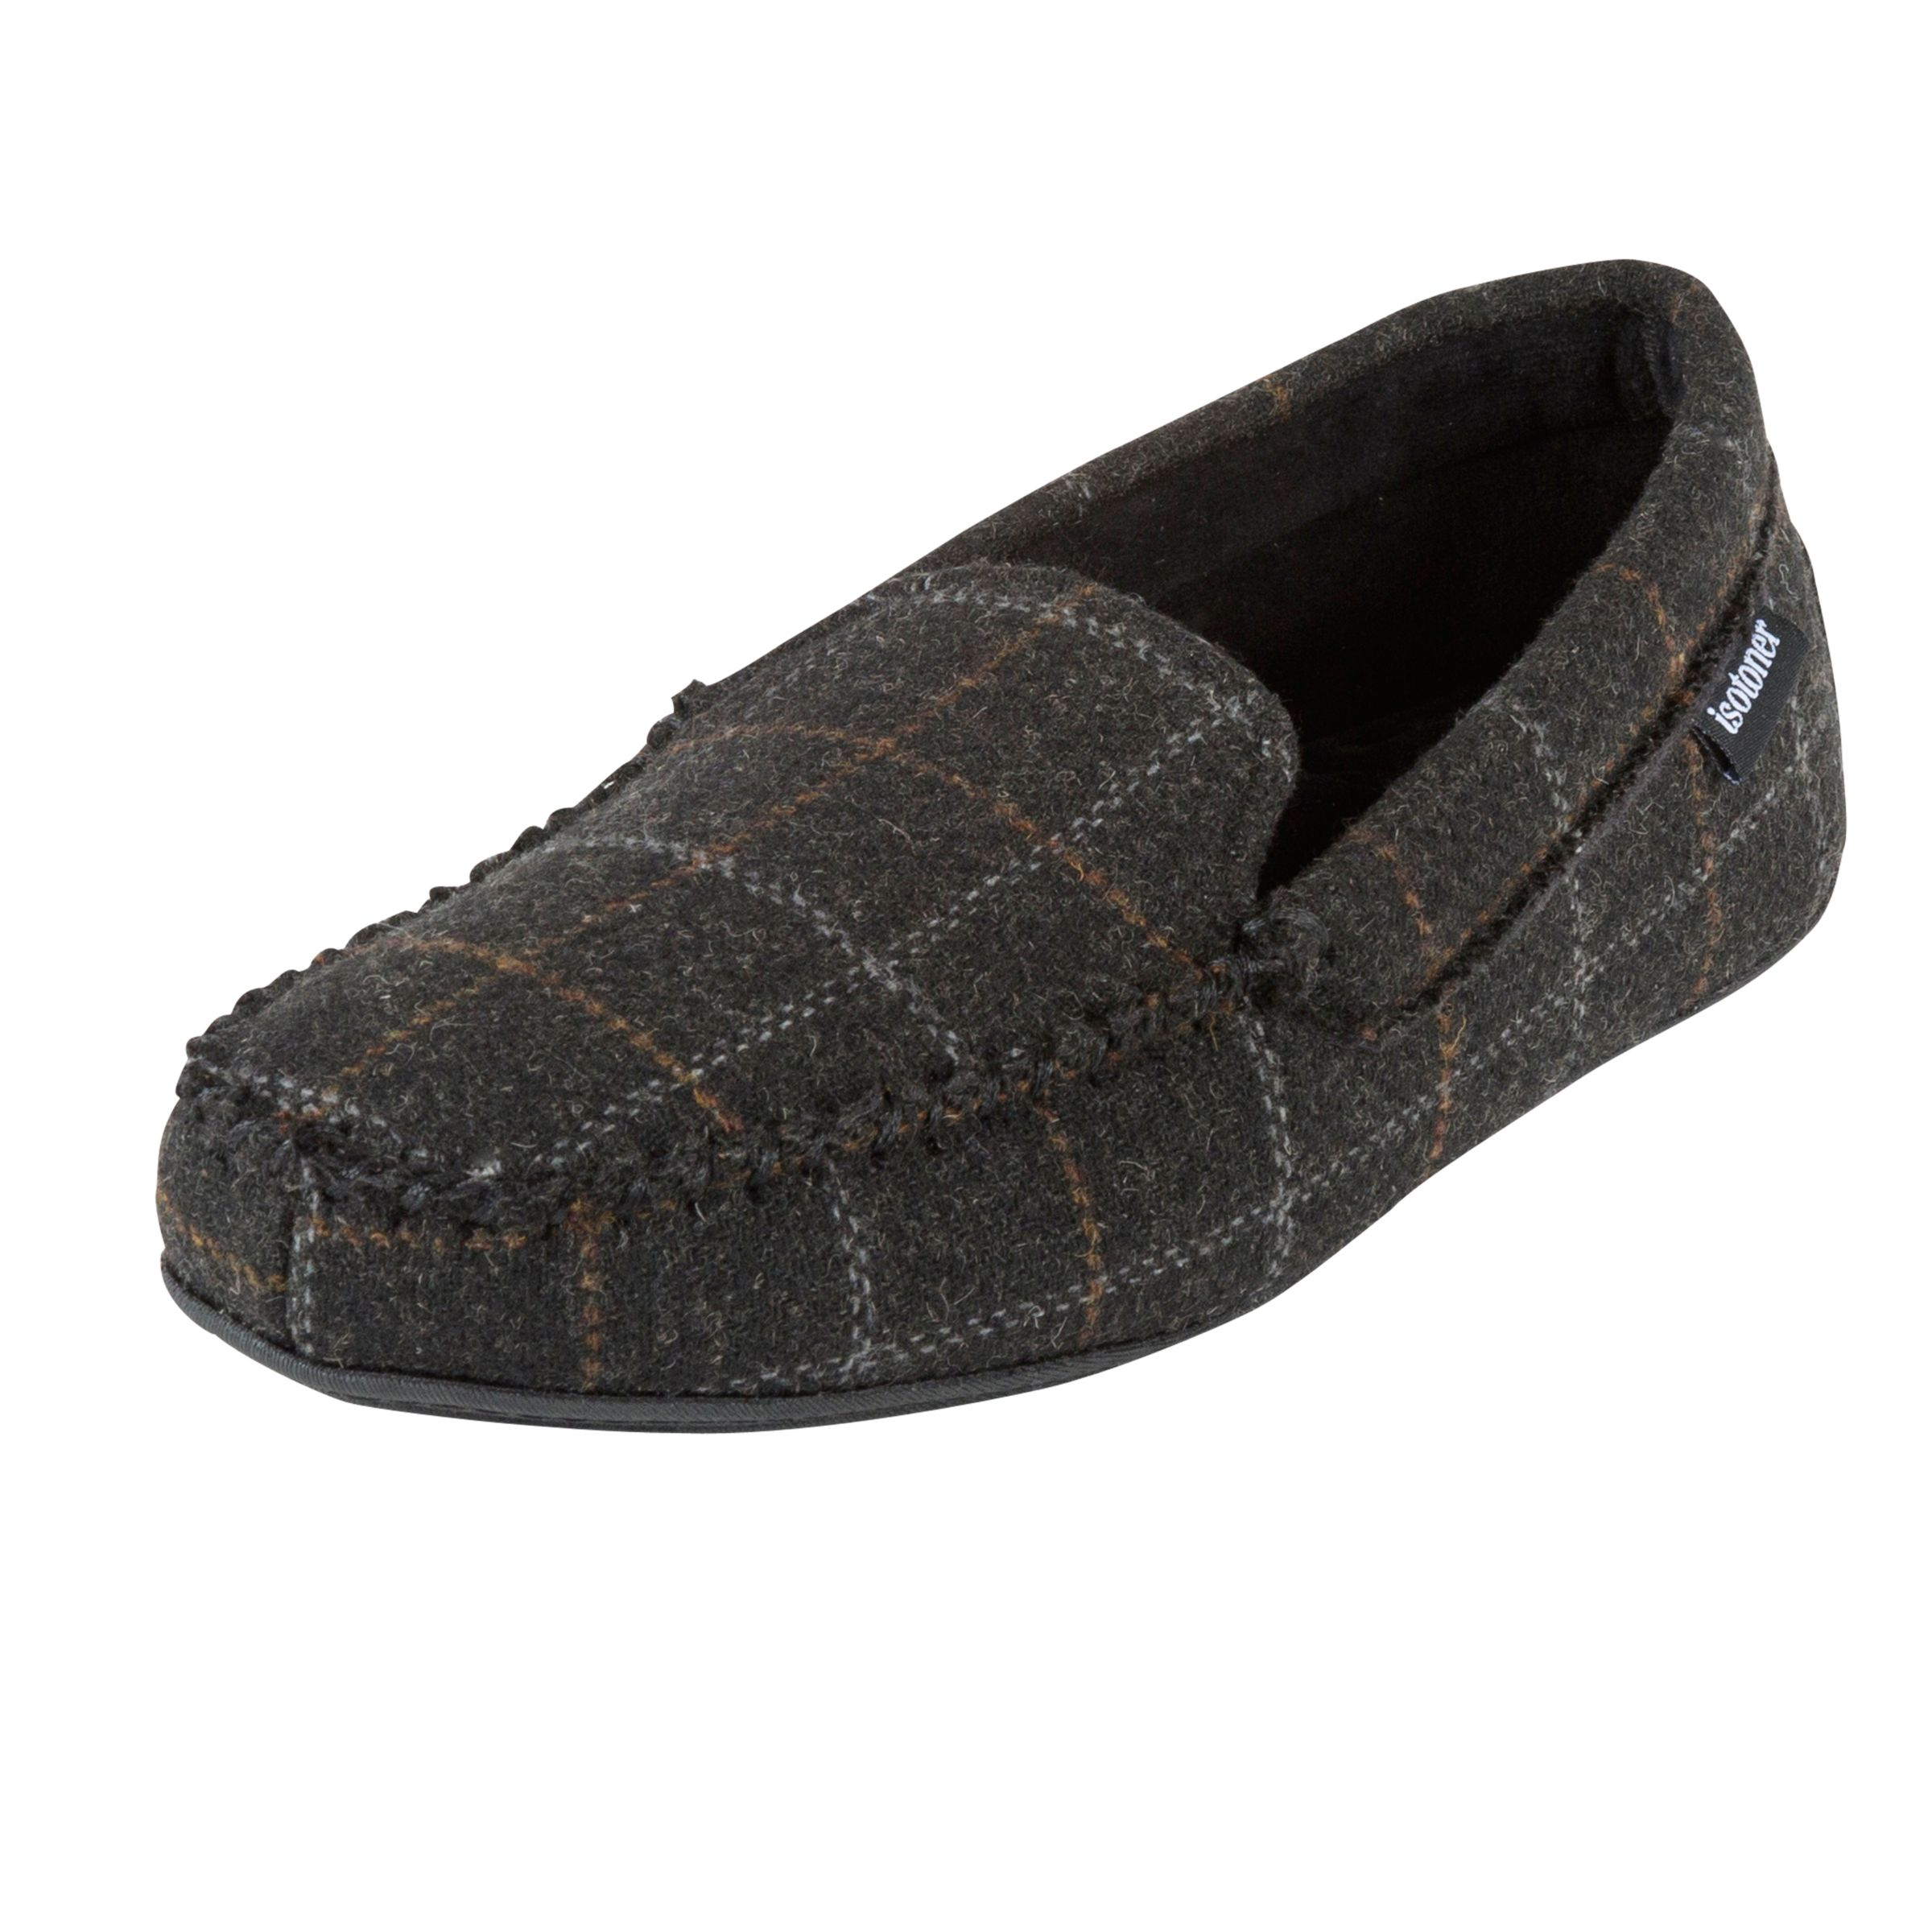 Totes Totes Woven Check Moccasin Slippers, Charcoal